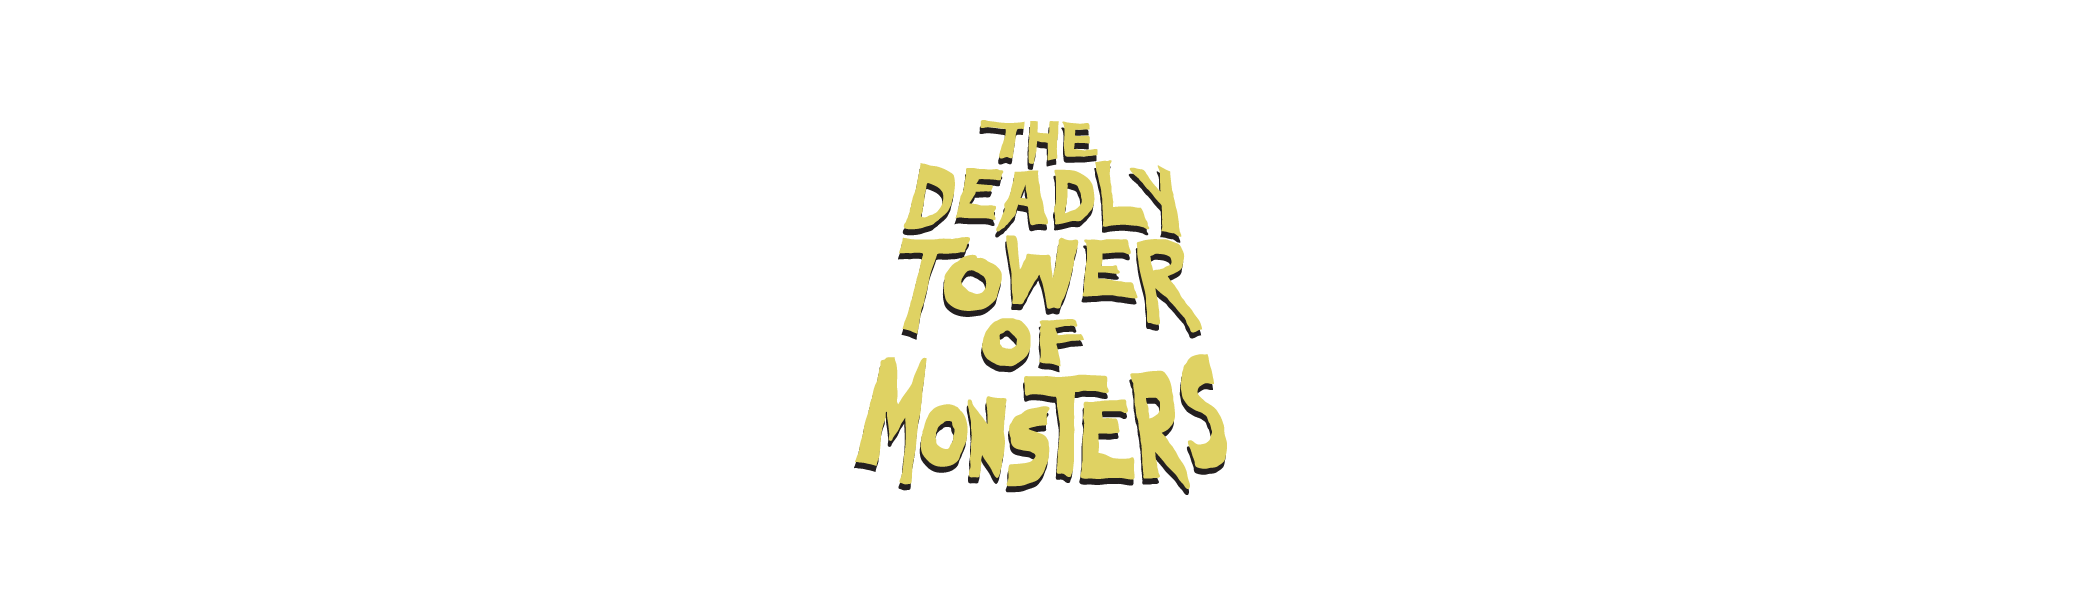 The Deadly Tower of Monsters